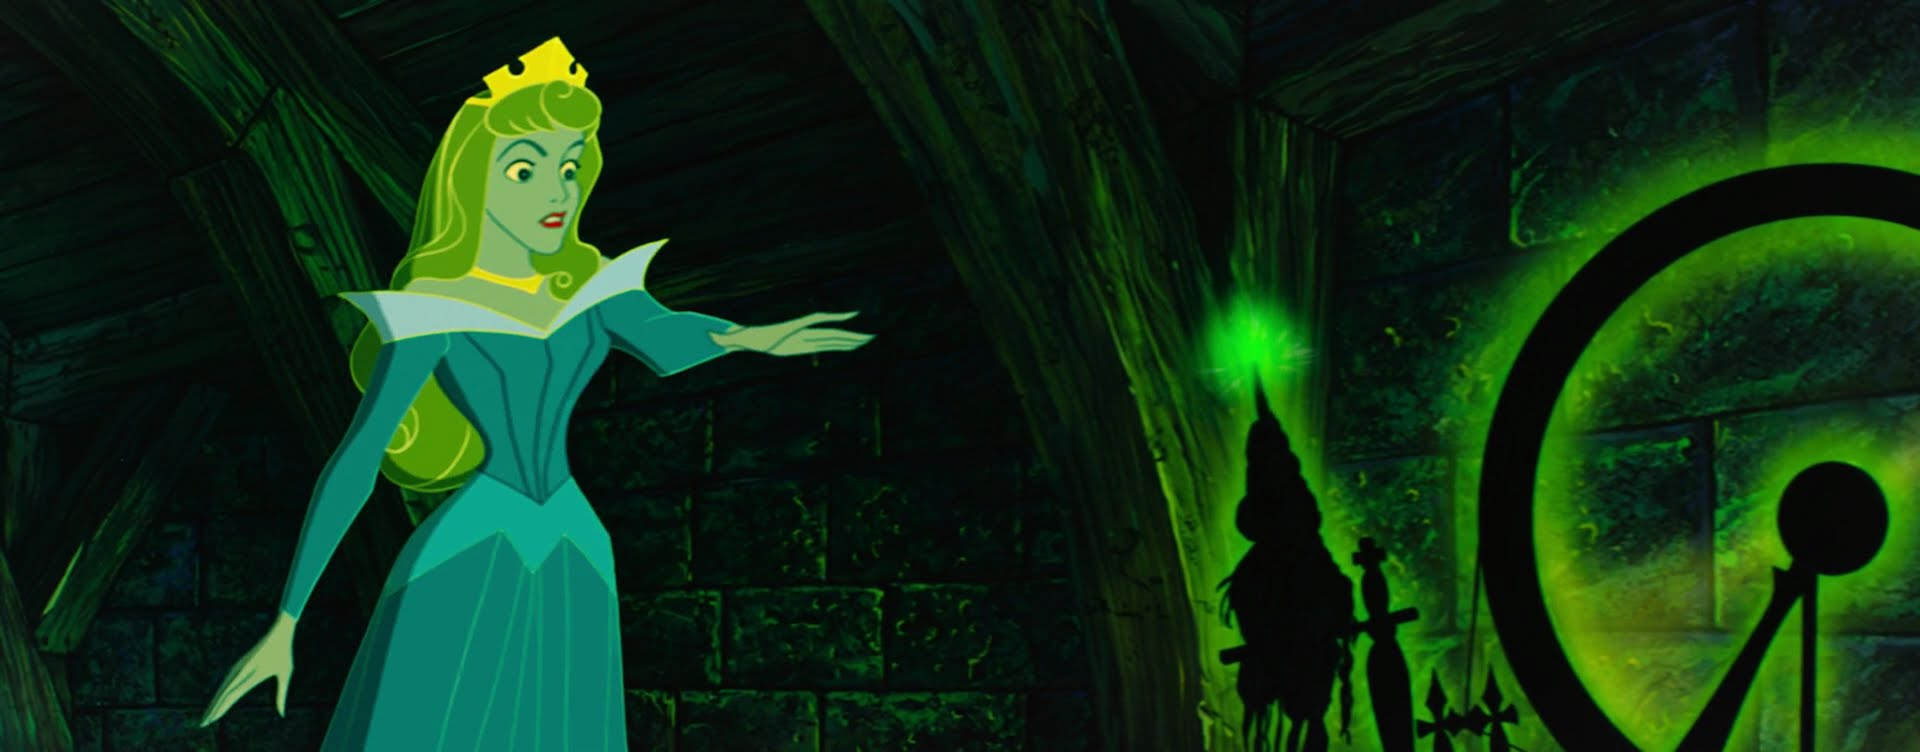 12 Moments From Disney Movies That Probably Belonged In A Horror Film